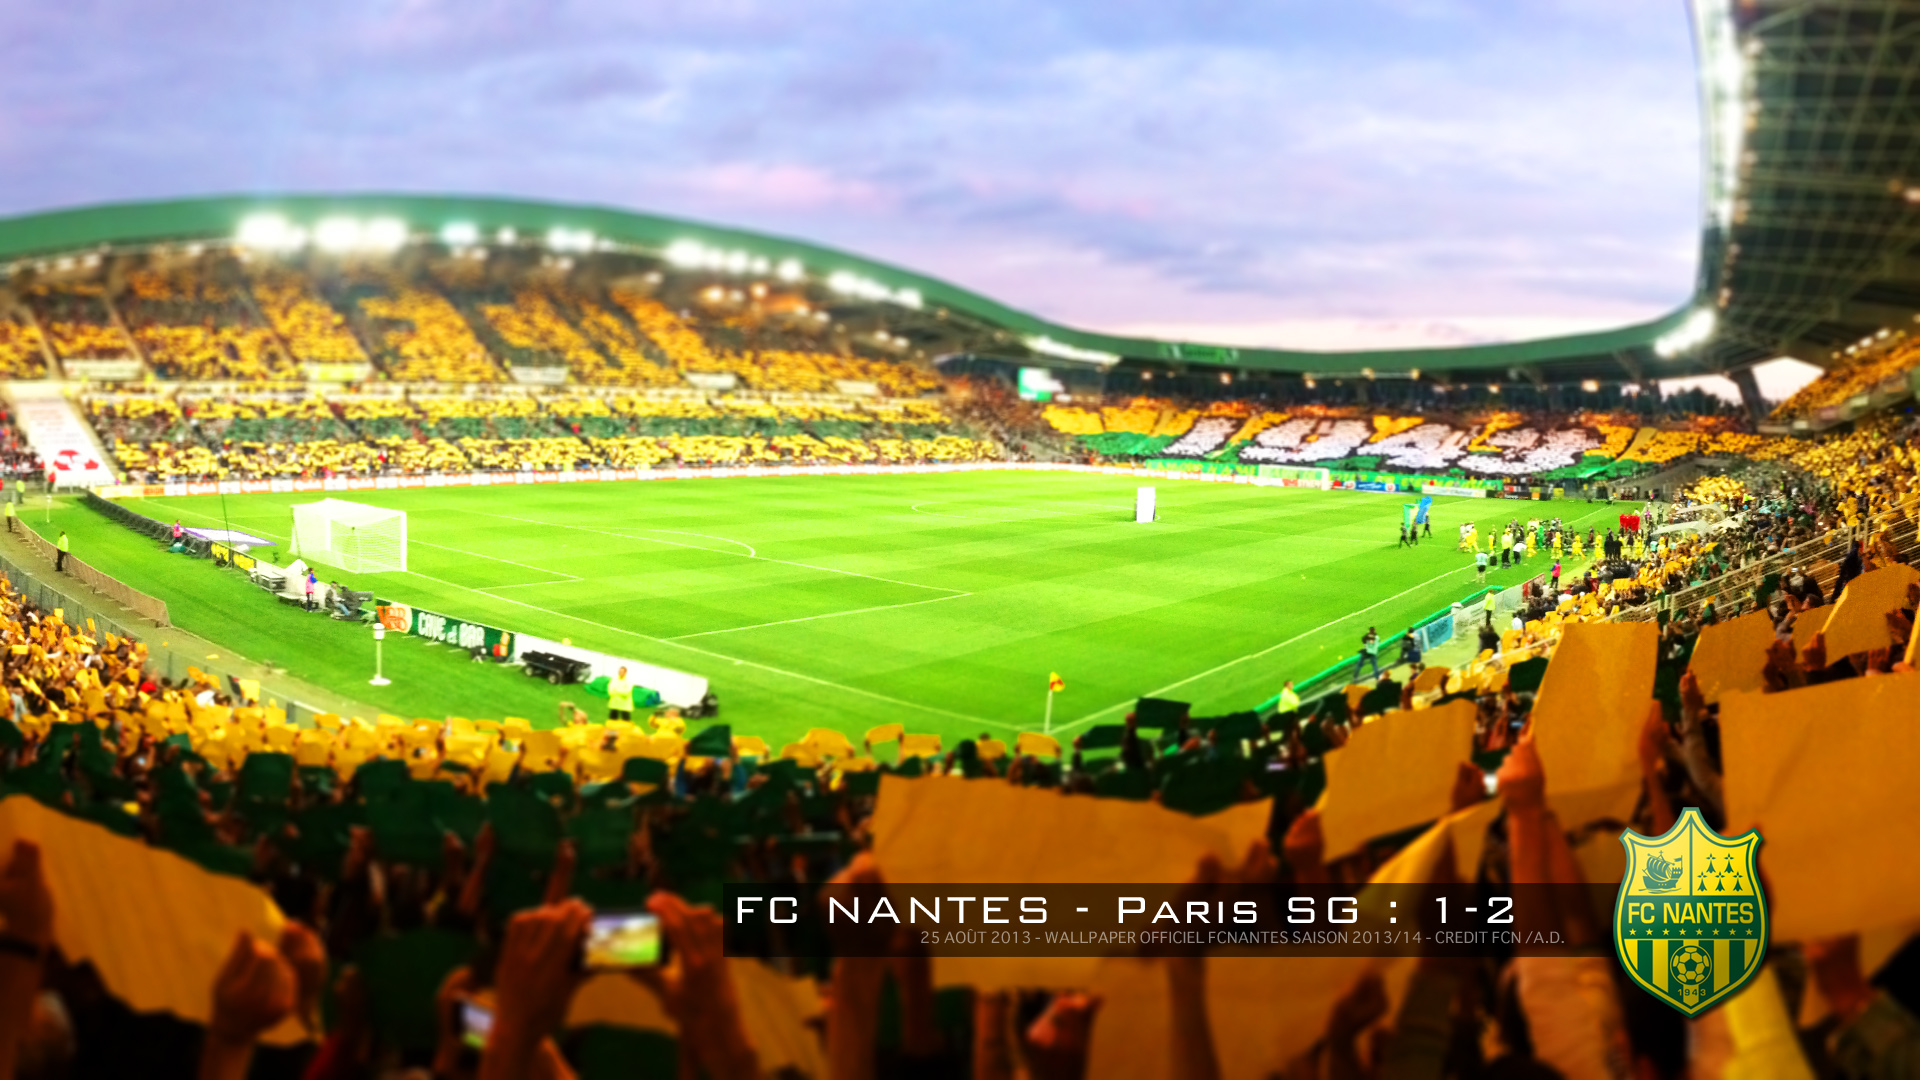 1000 images about fc nantes on pinterest nantes football and tour eiffel. Black Bedroom Furniture Sets. Home Design Ideas